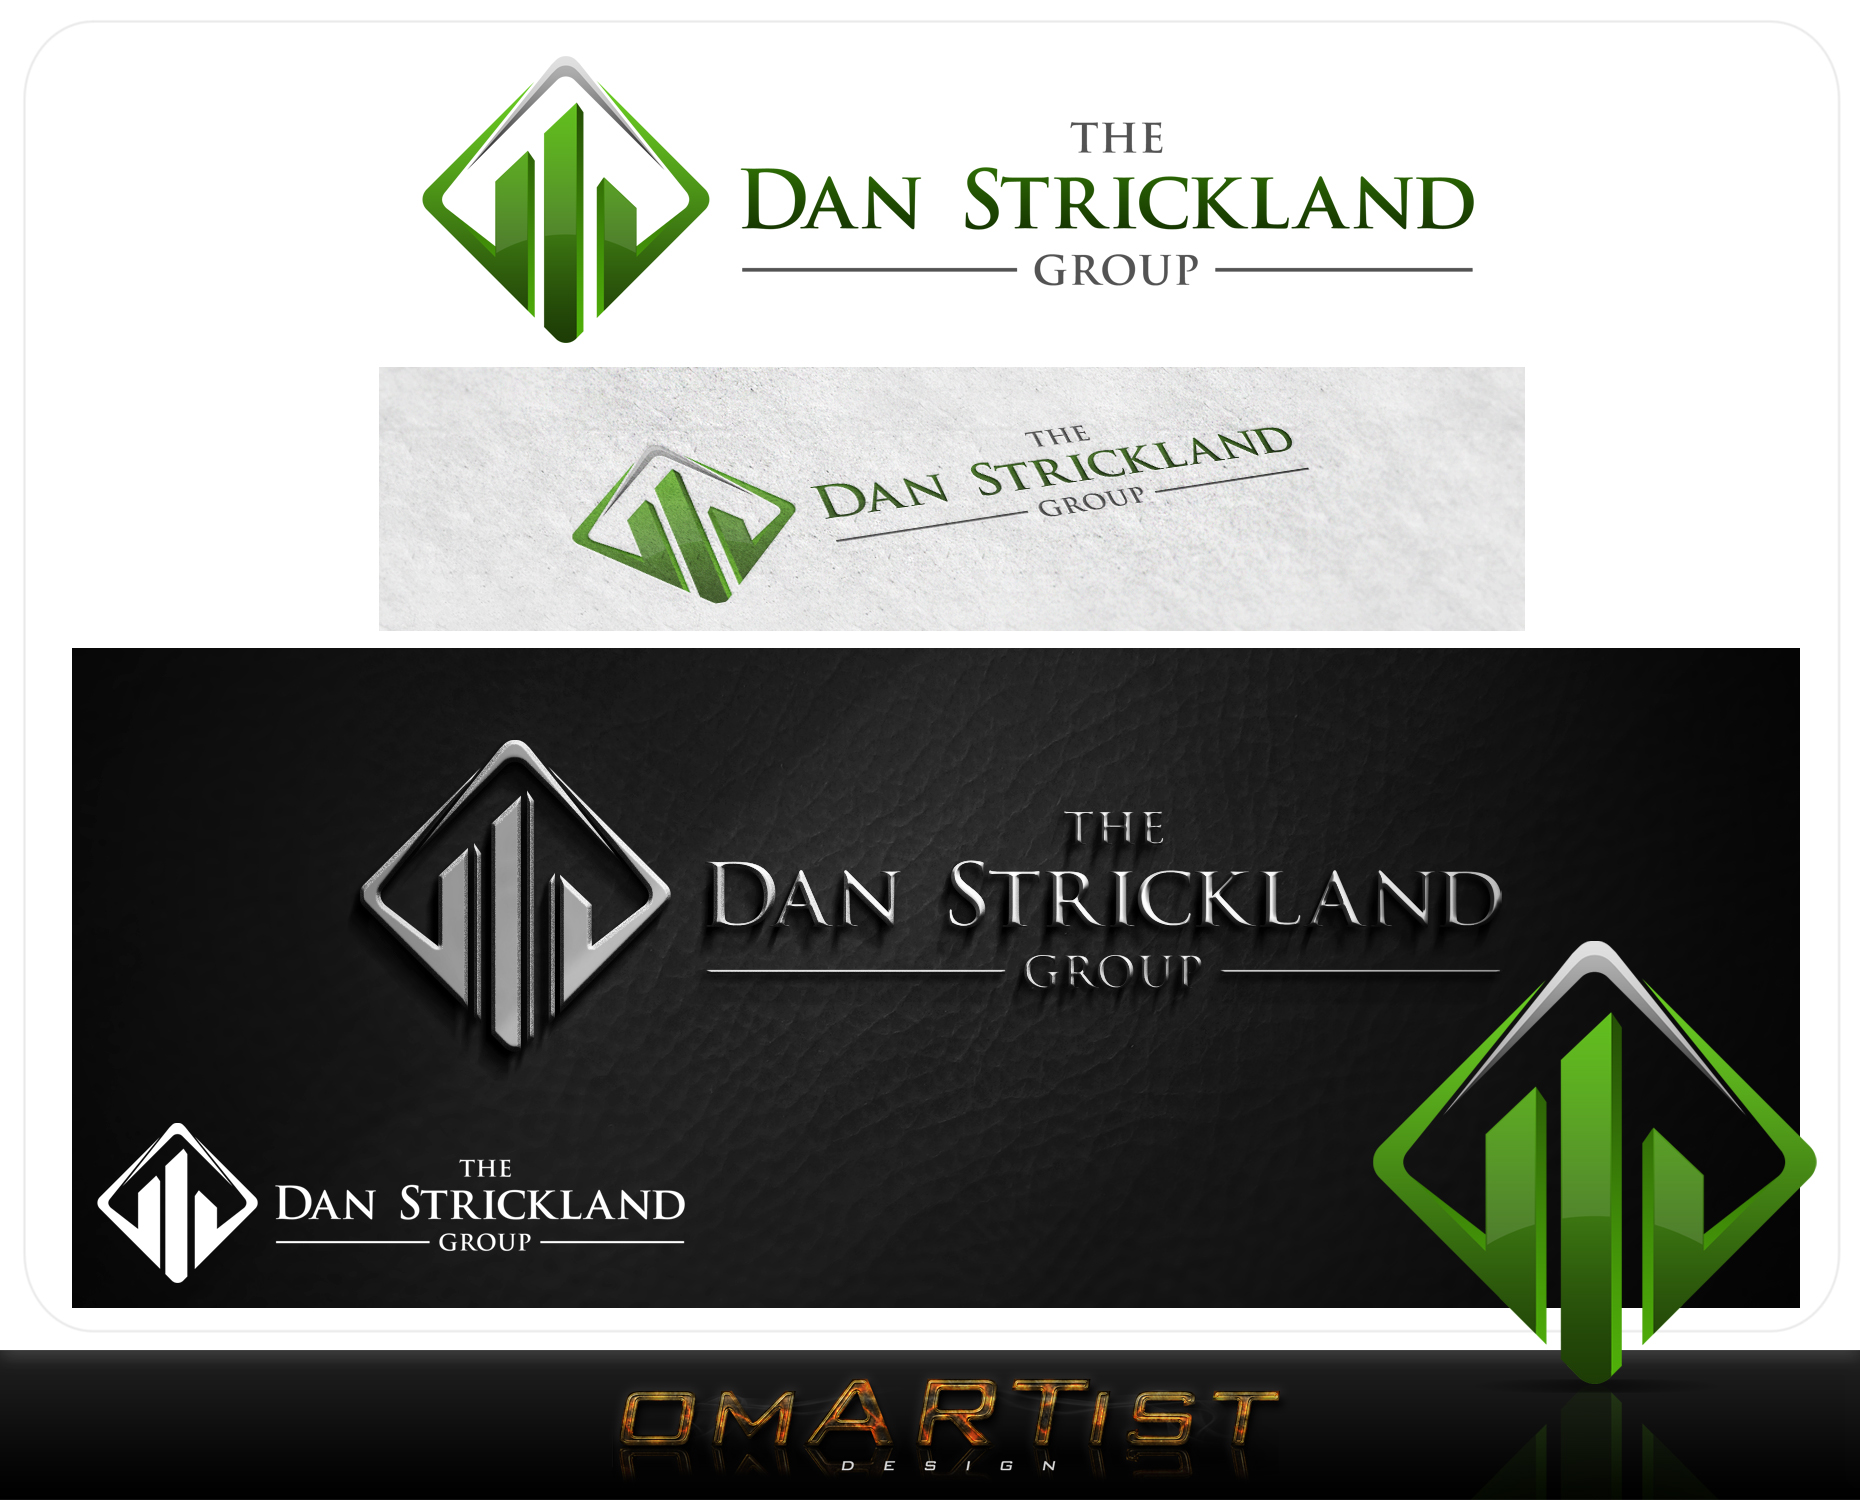 Logo Design by omARTist - Entry No. 226 in the Logo Design Contest Creative Logo Design for The Dan Strickland Group.